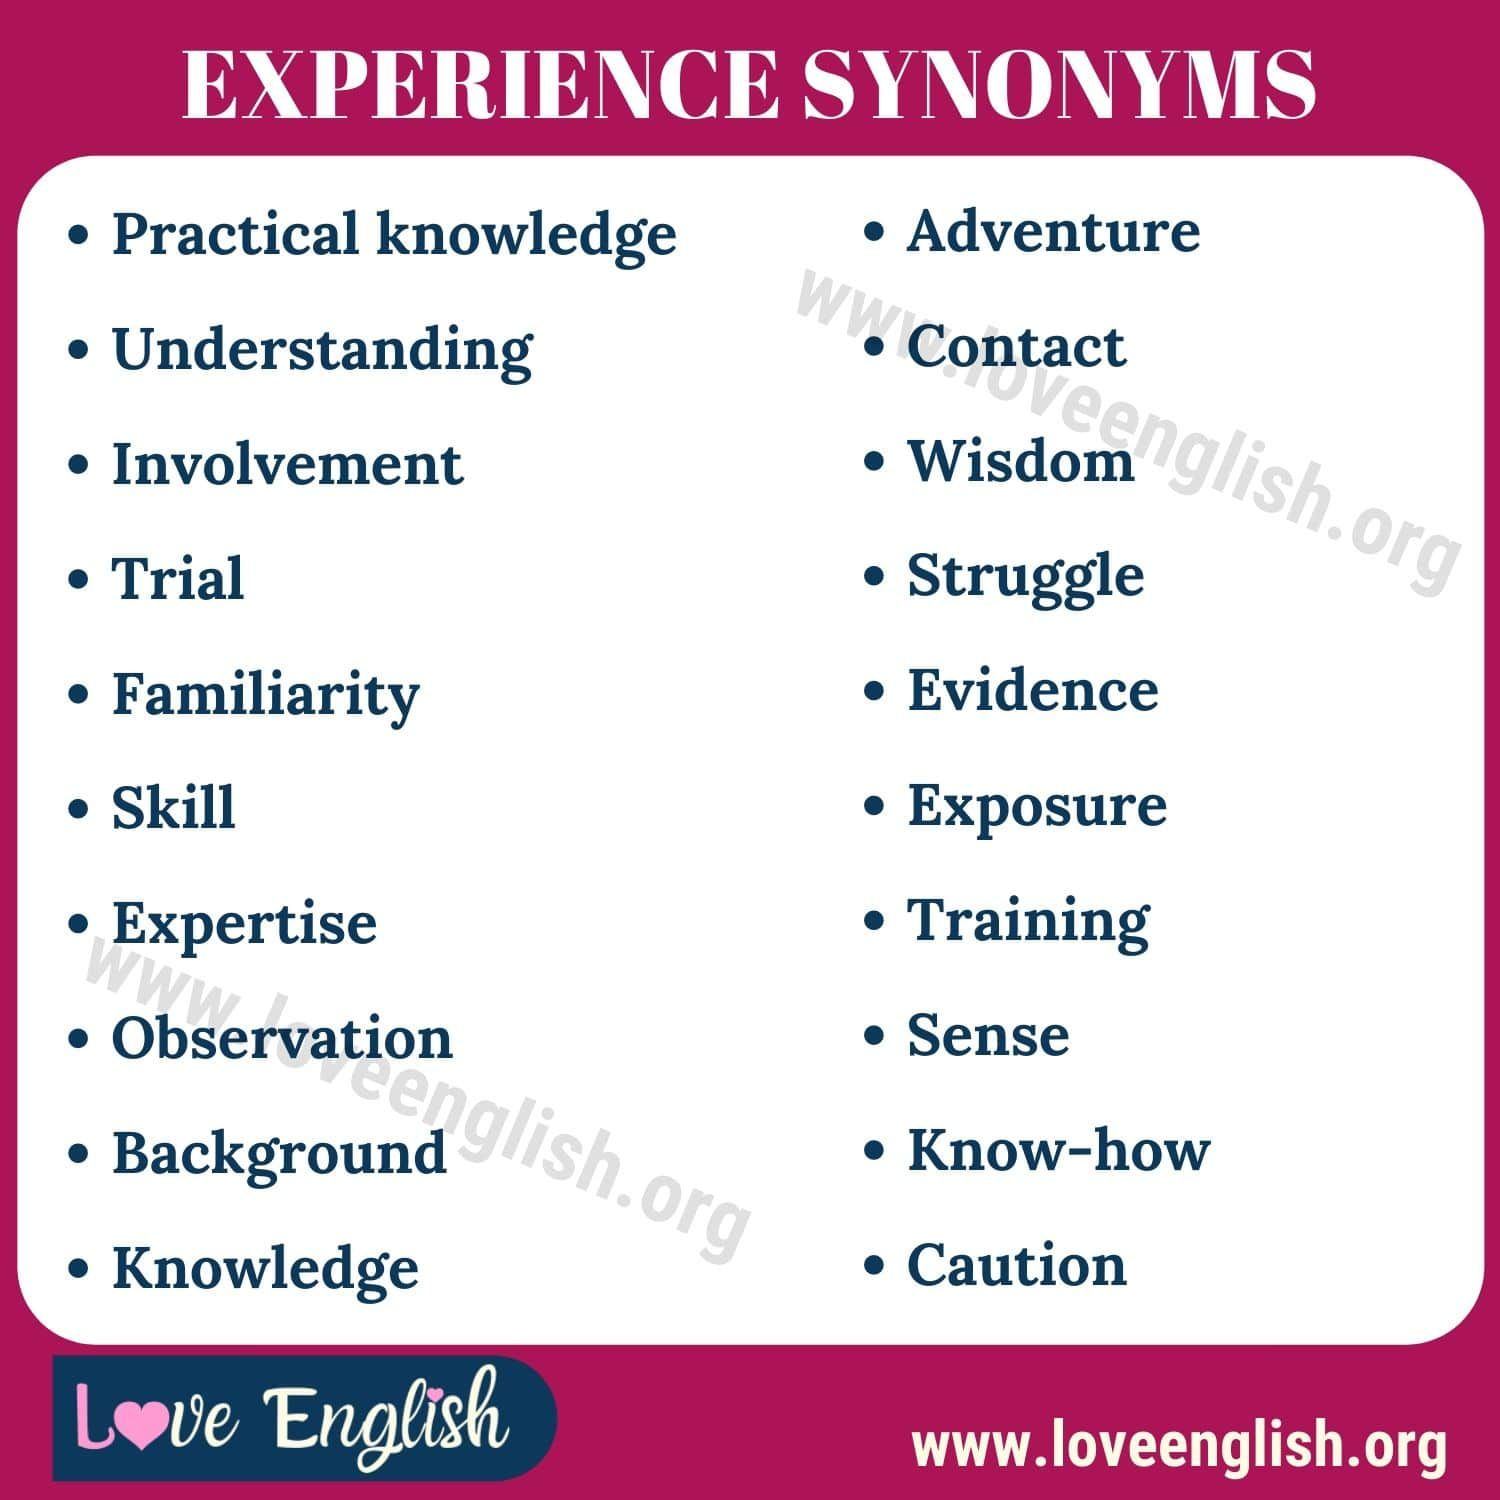 Experience Synonym 20 Common Synonyms For Experience In English Love English In 2021 Writing Words Another Word For Experience Synonym